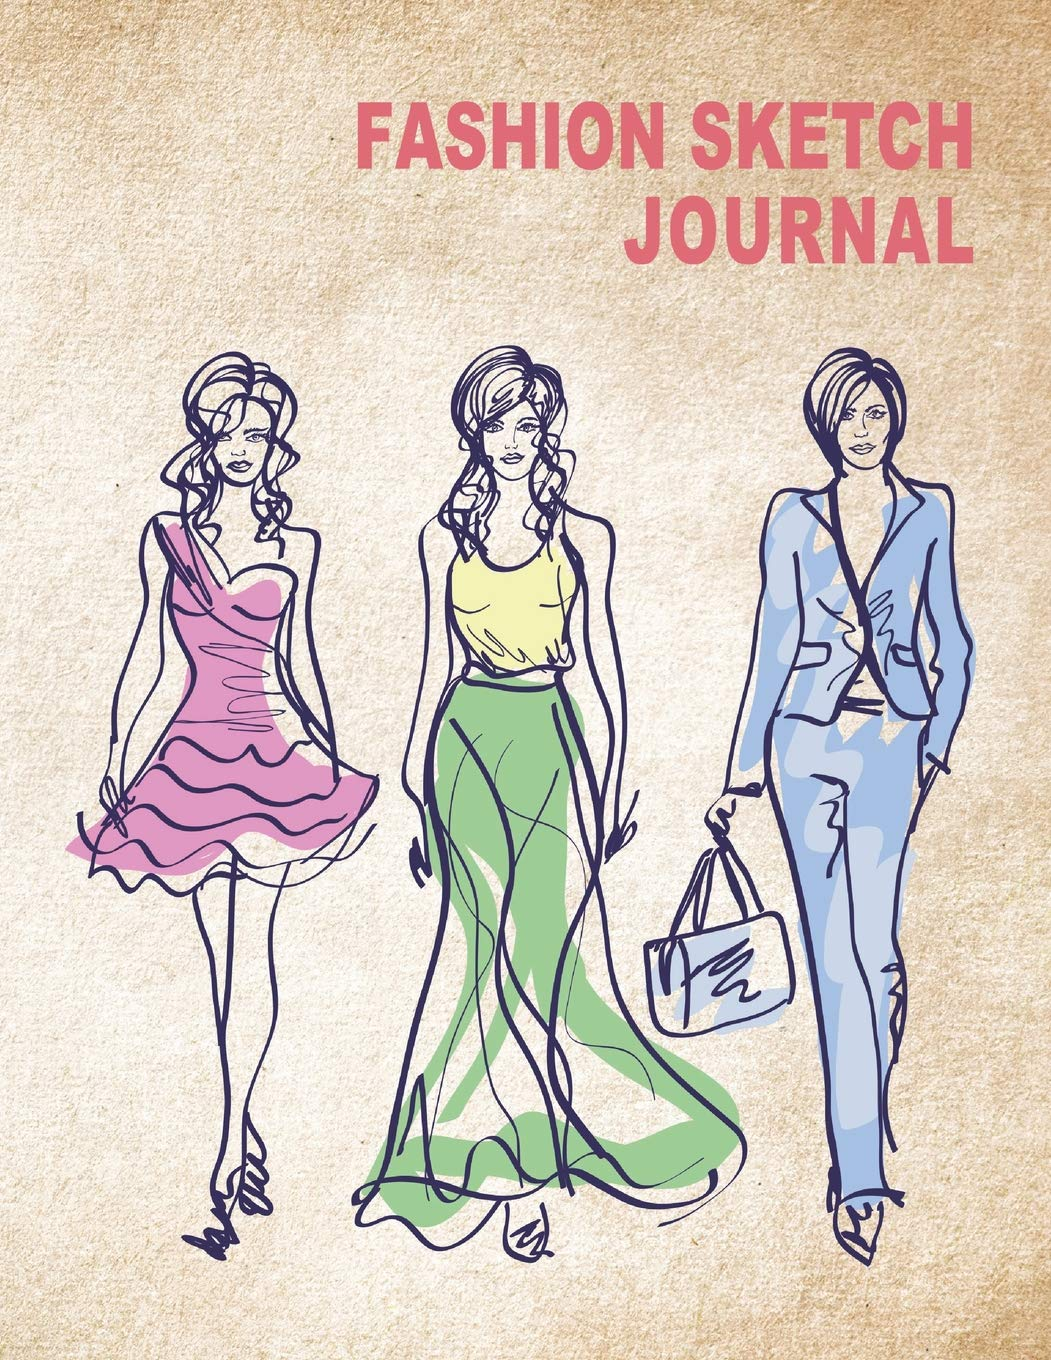 Amazon Com Fashion Sketch Journal Women Figure Sketch Different Posed Template Will Easily Create Your Fashion Styles Fashion Sketch 9781983001758 Ahrendts Angel Books